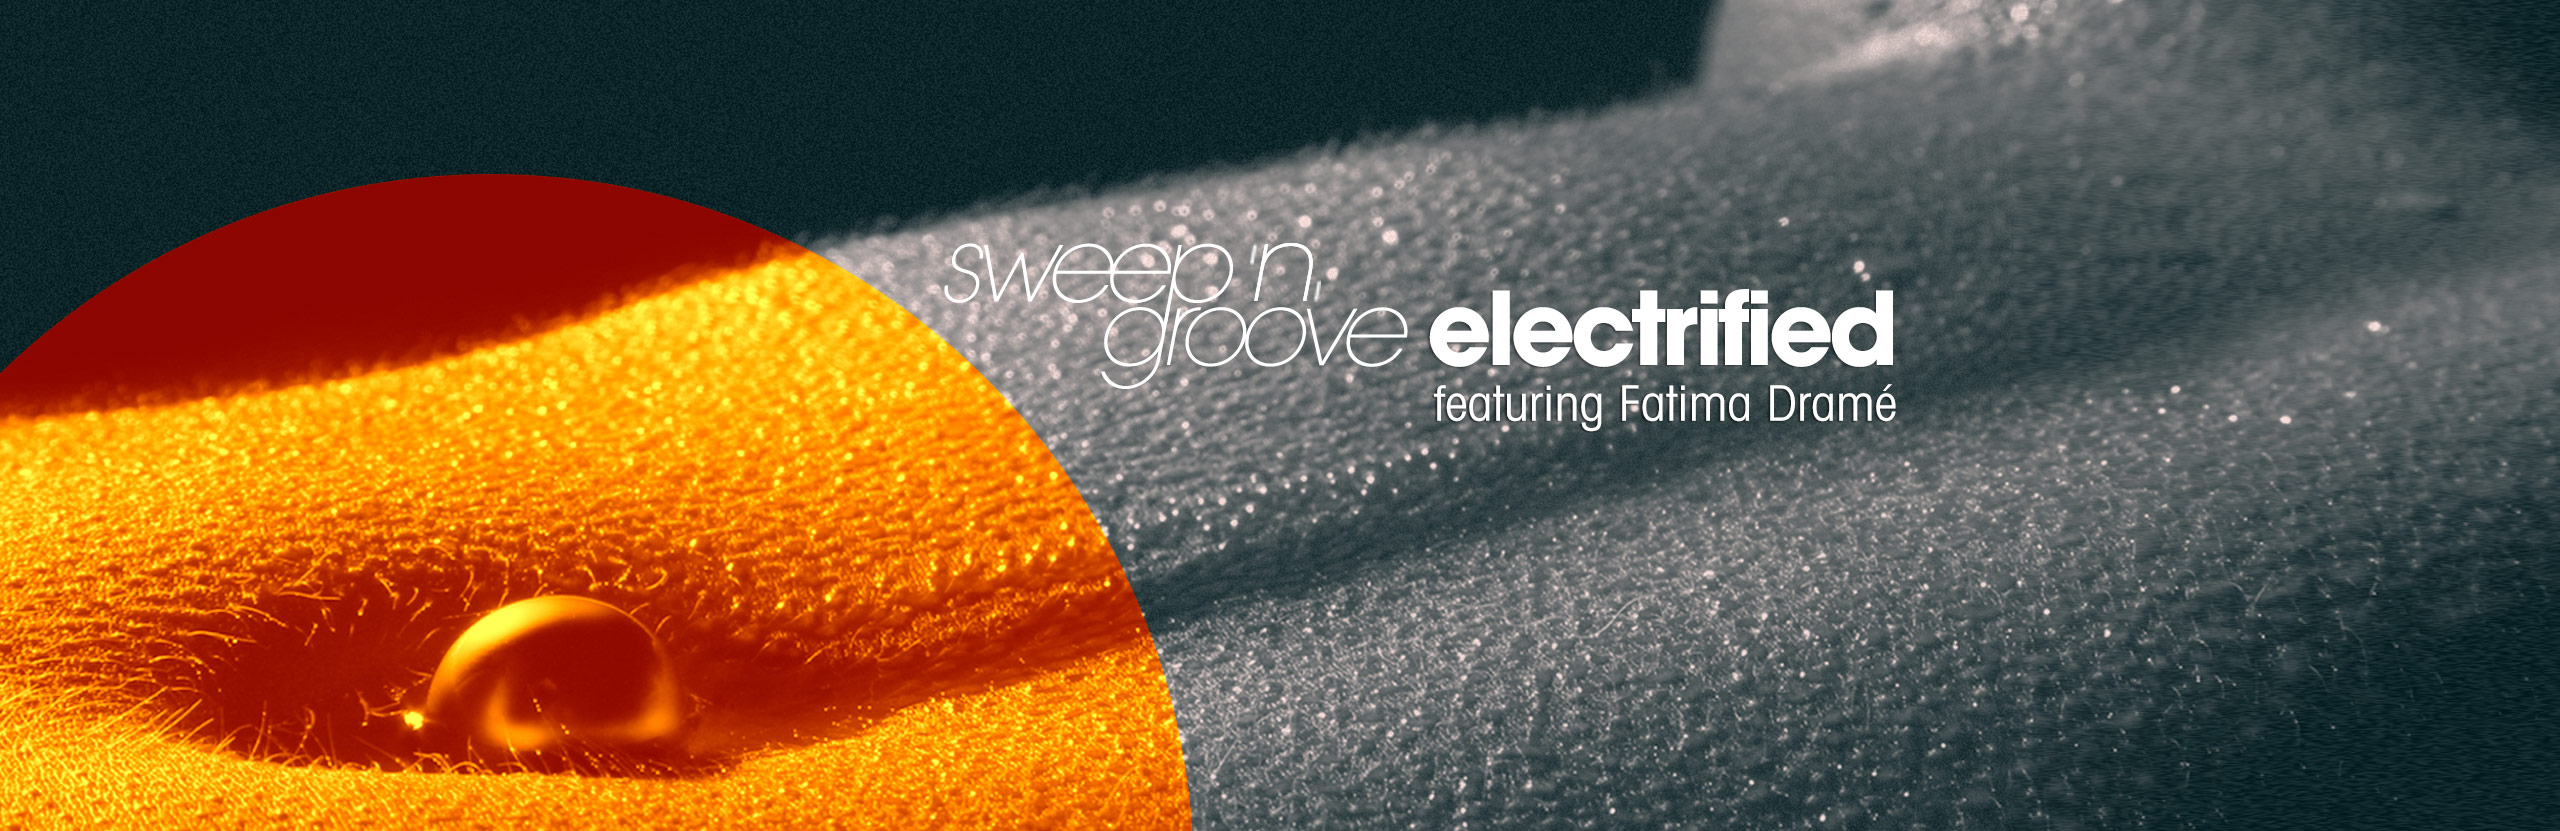 npm2013_sweepngroove-electrified